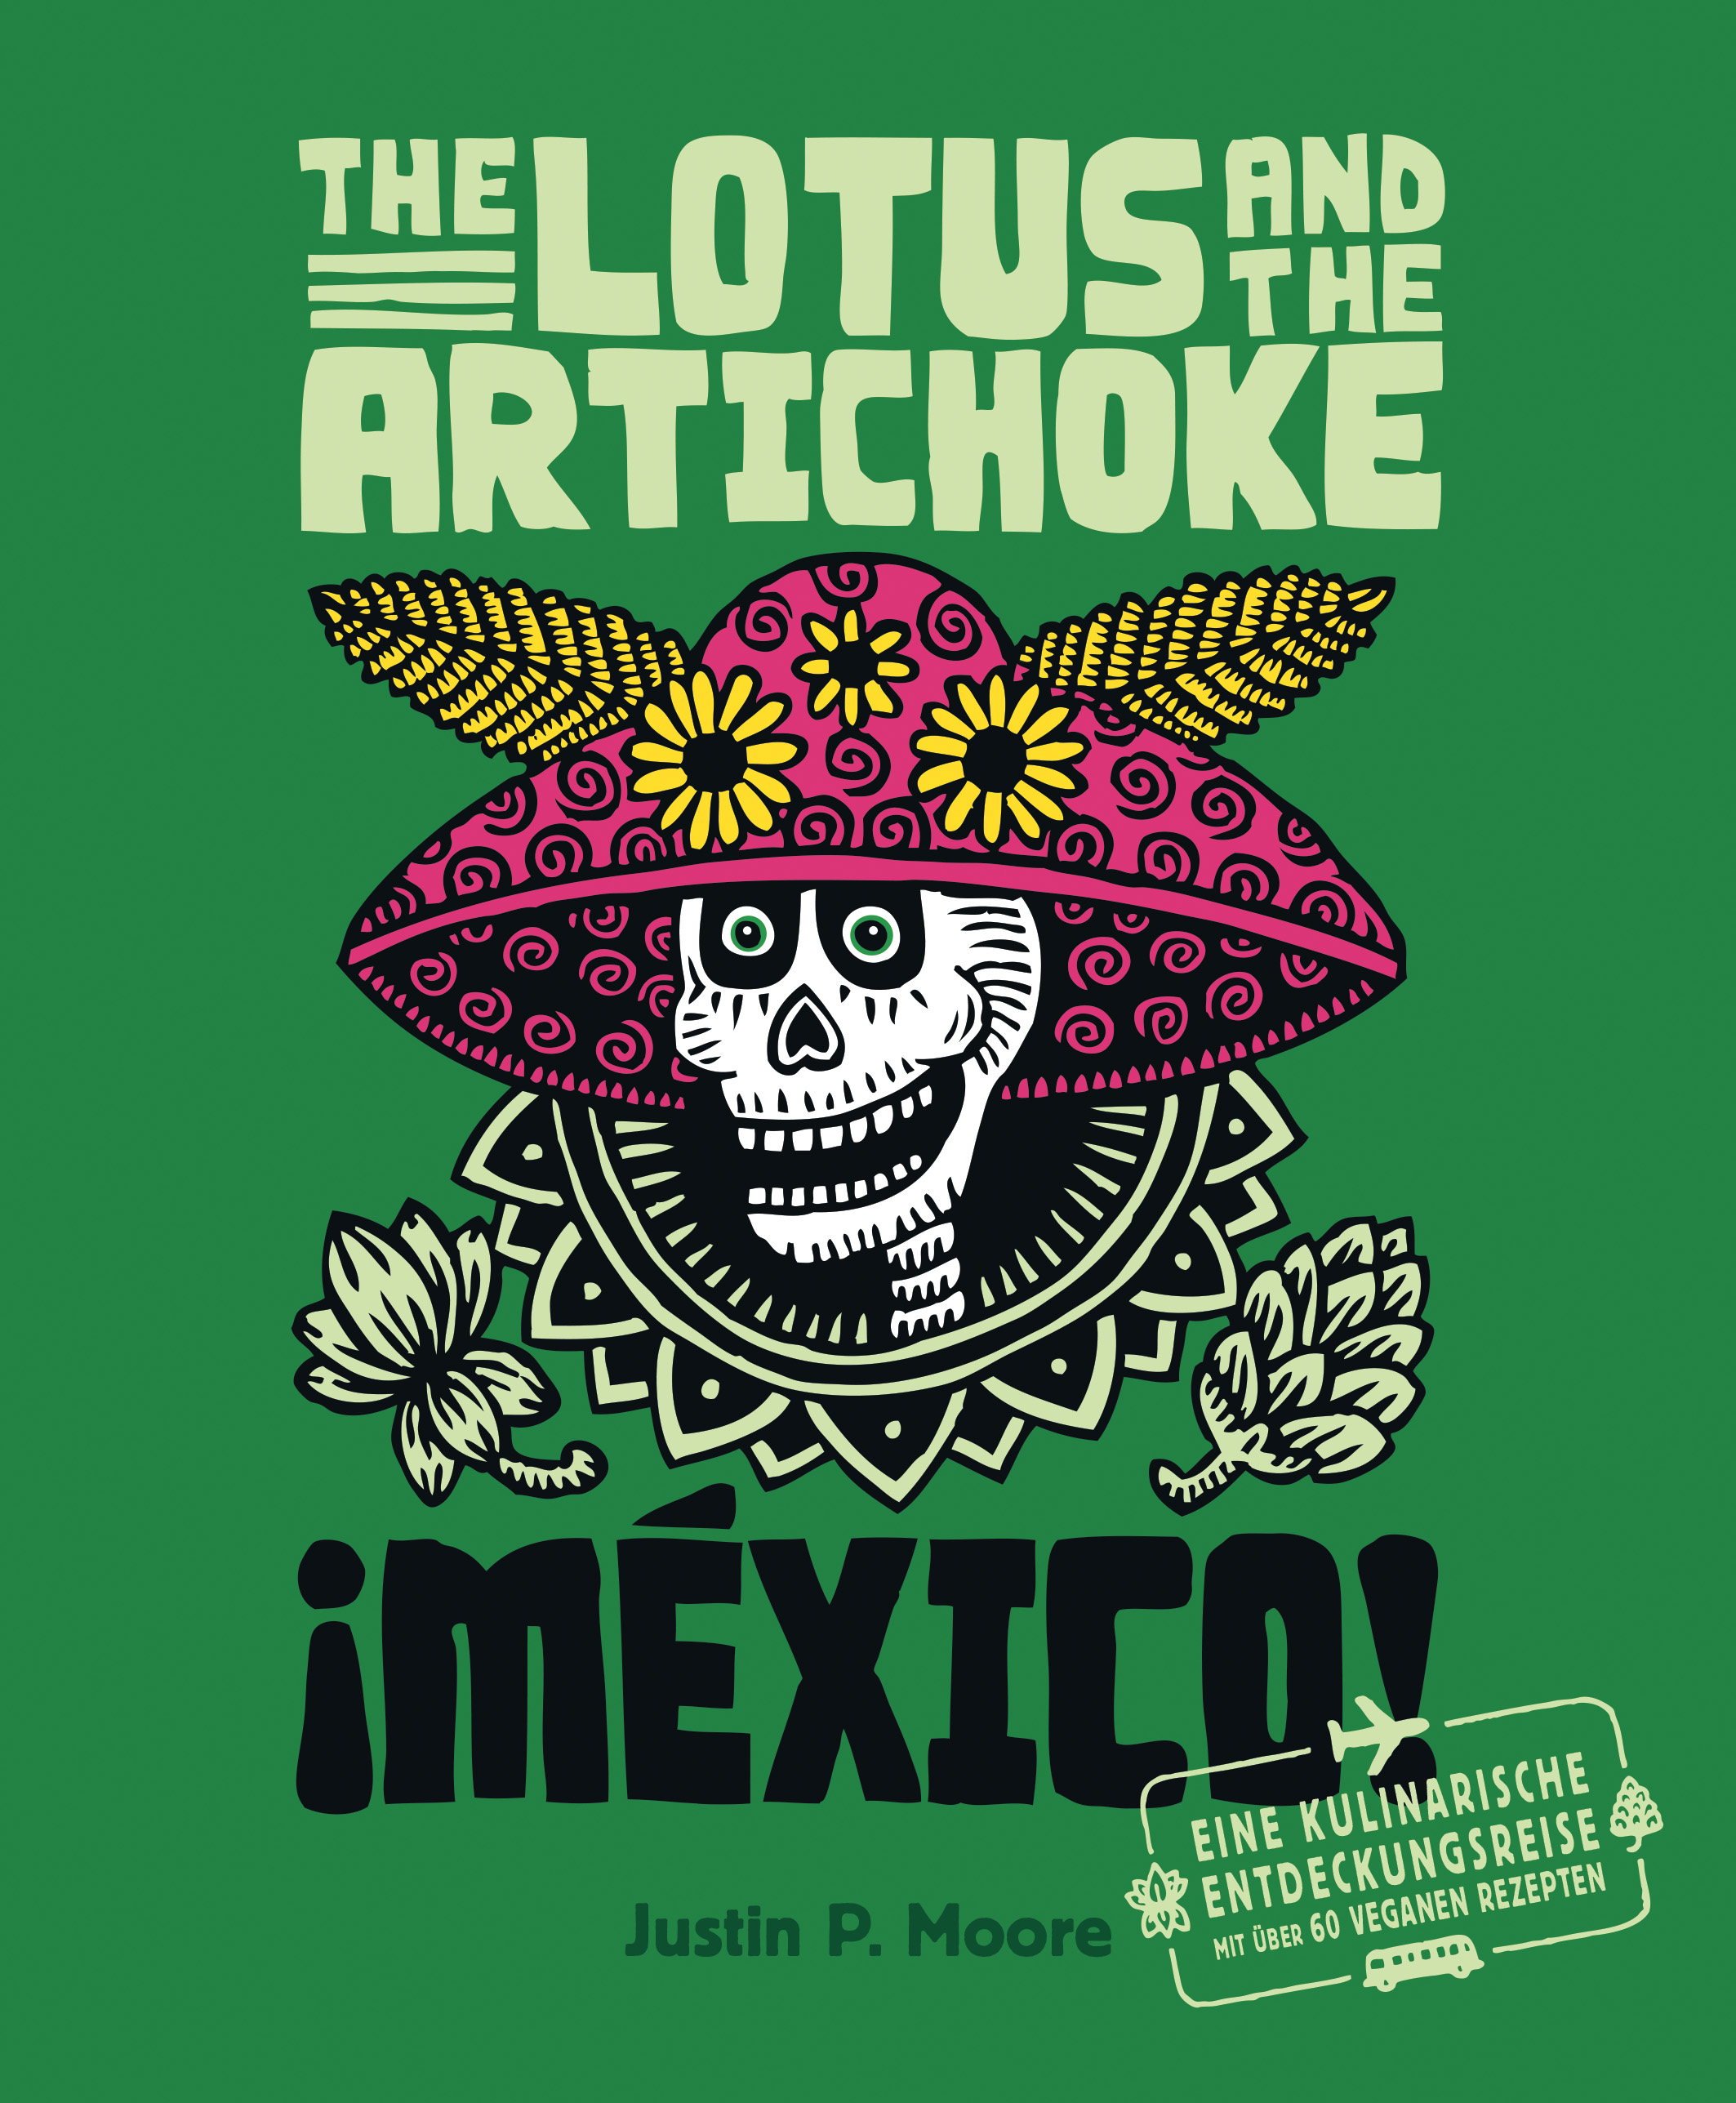 The Lotus and the Artichoke - Mexico!, Justin P. Moore